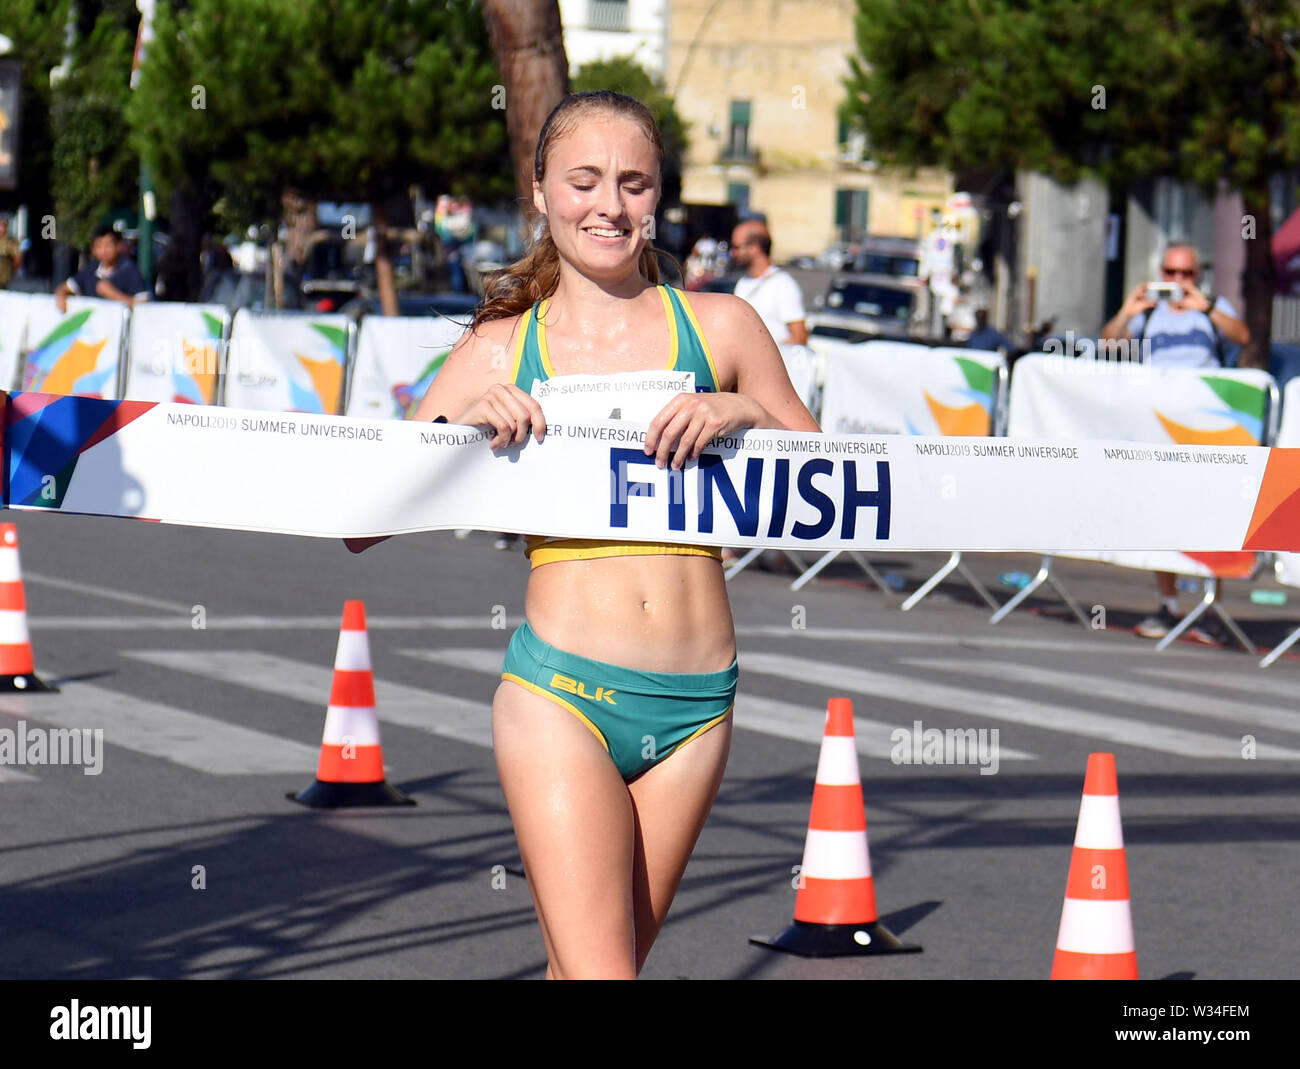 Naples, Italy. 12th July, 2019. Katie Hayward of Australia competes during the final match of Women's 20km Walk at the 30th Summer Universiade in Naples, Italy, July 12, 2019. Credit: Kong Hui/Xinhua/Alamy Live News Stock Photo